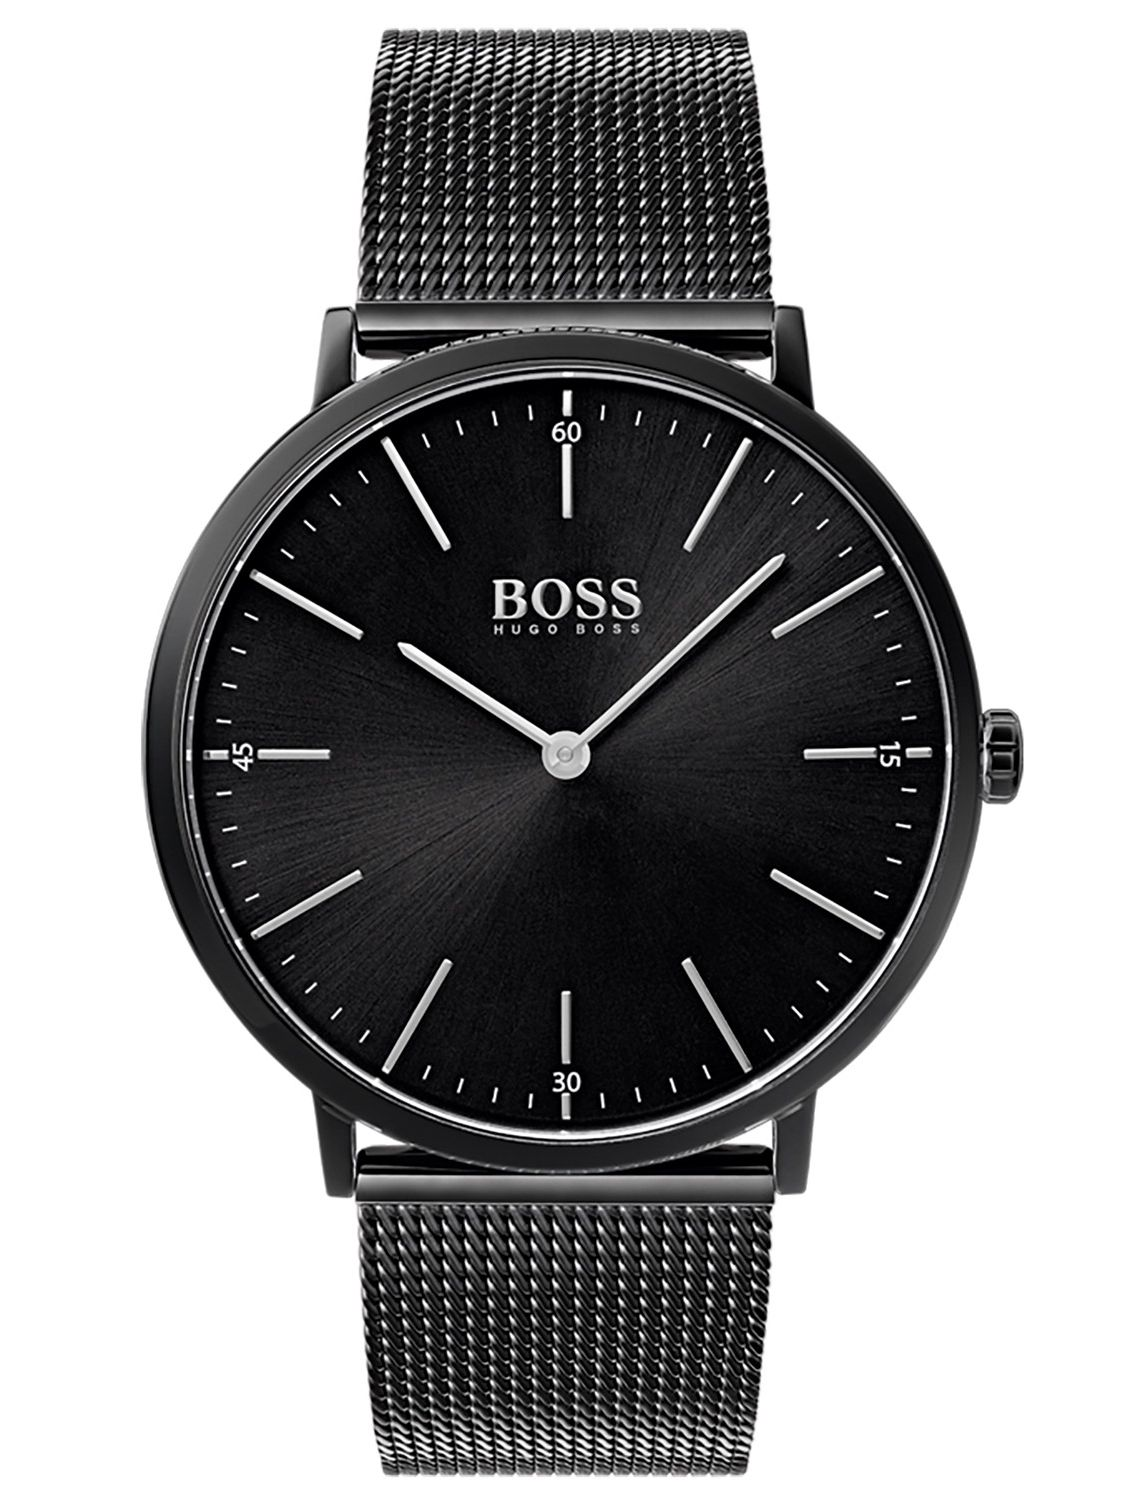 8c962c68b93c BOSS Mens Watch Horizon 1513542 • uhrcenter Watches Shop